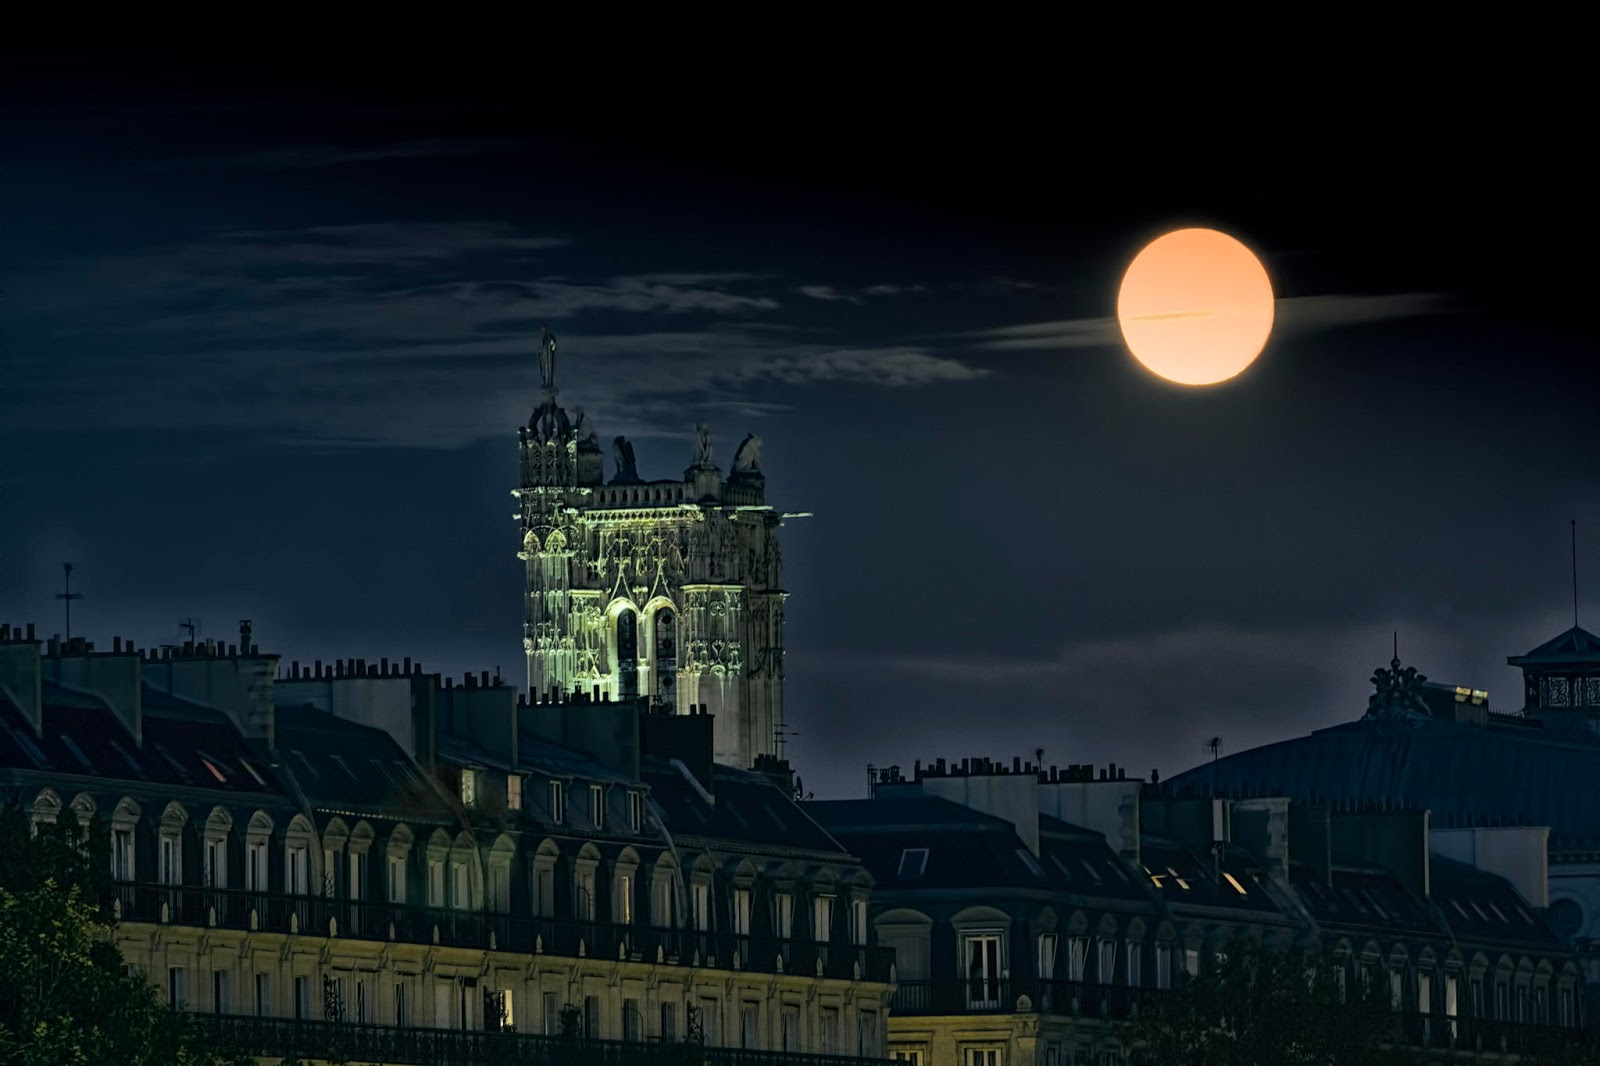 https://earthmoonandstars.files.wordpress.com/2016/08/full-moon-over-paris-pedro-jarque-krebs.jpg